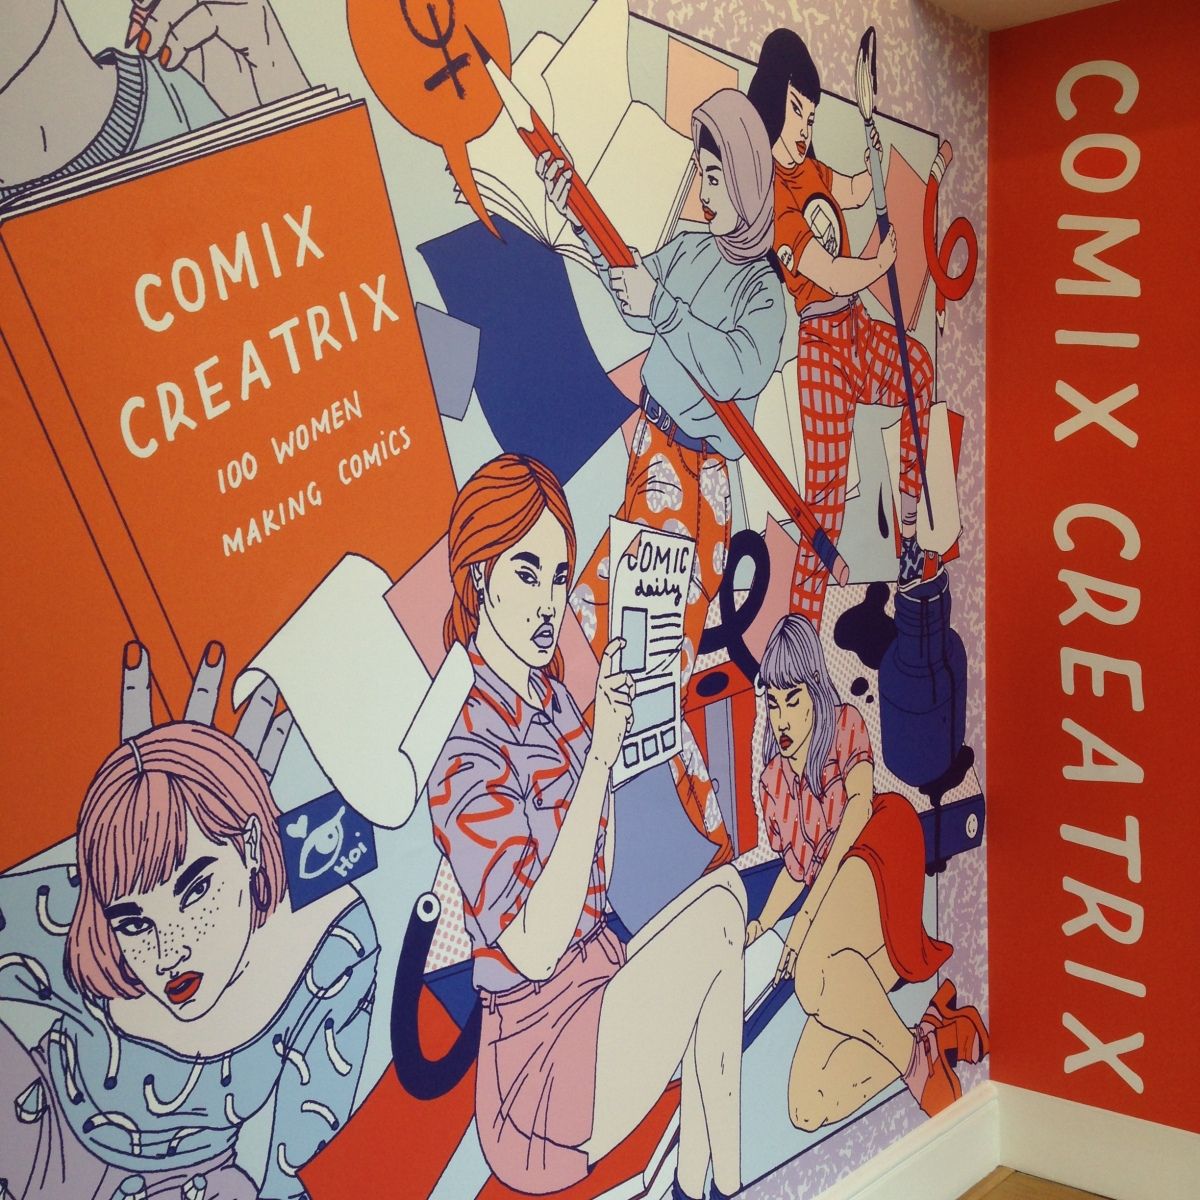 Comics Creatrix poster by Laura Callaghan